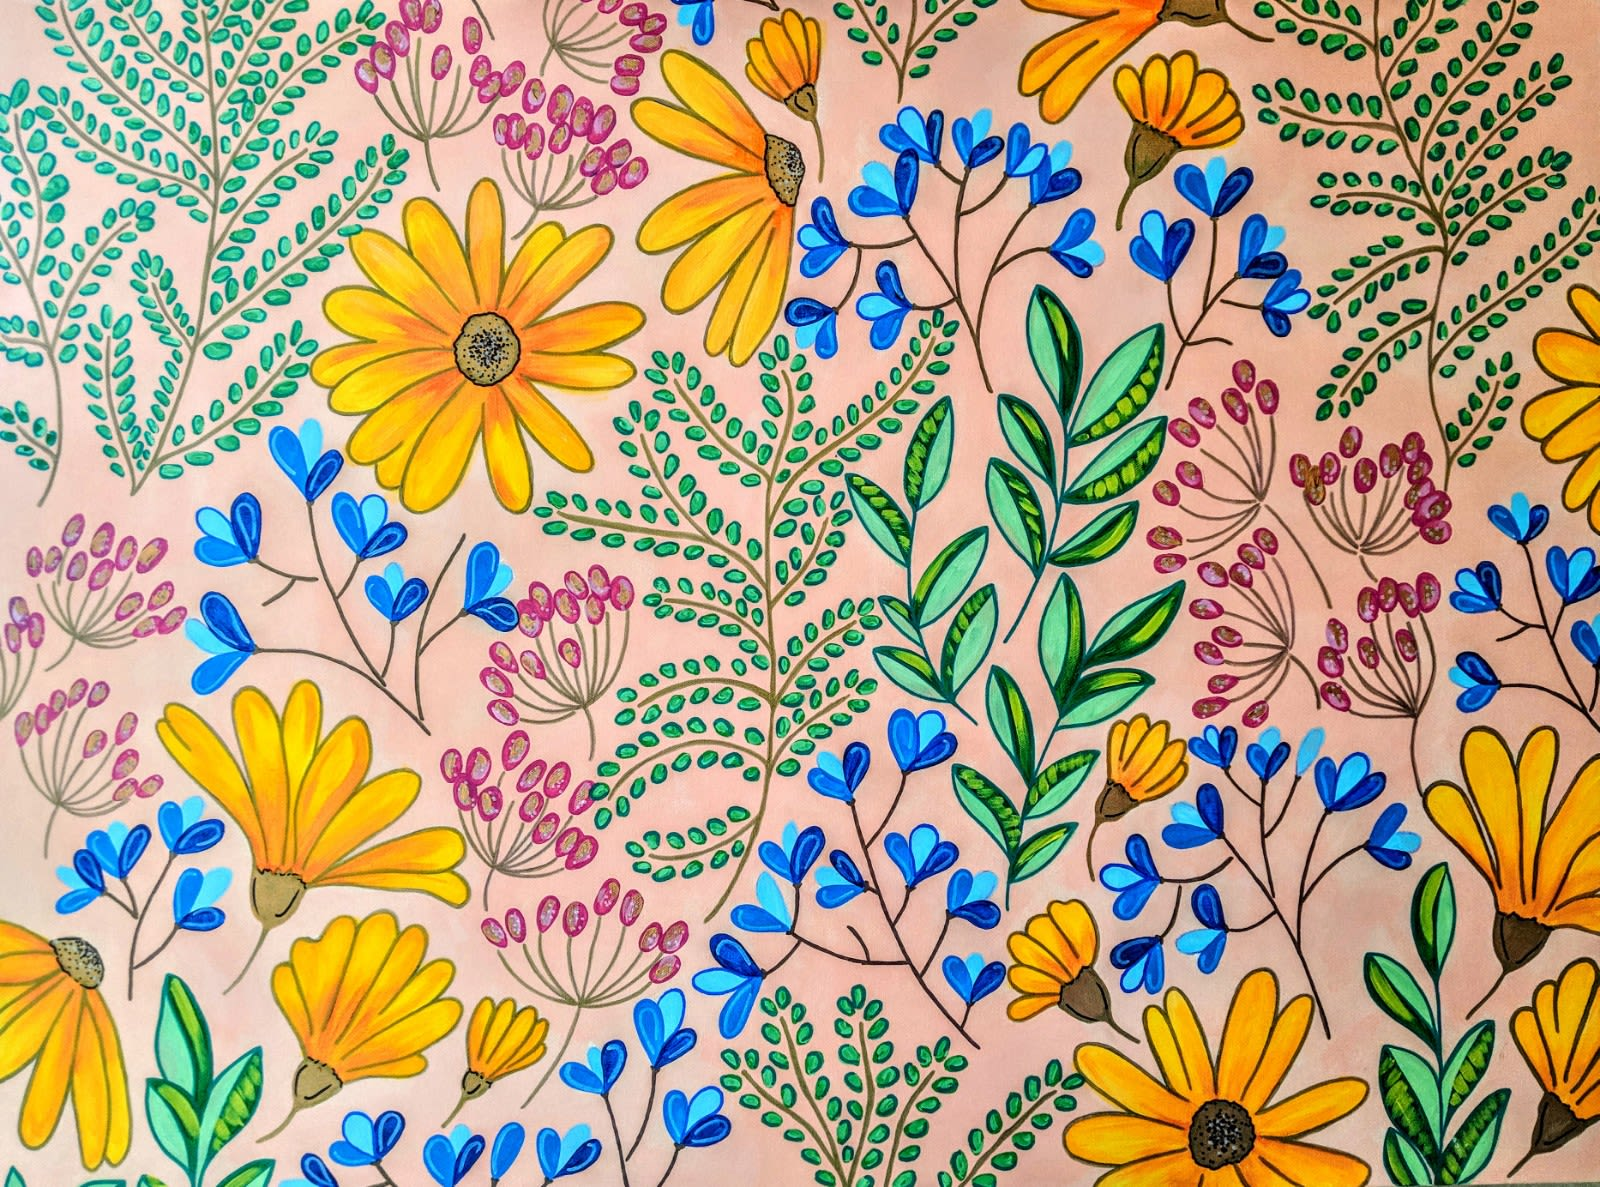 Bright multicolor floral painting